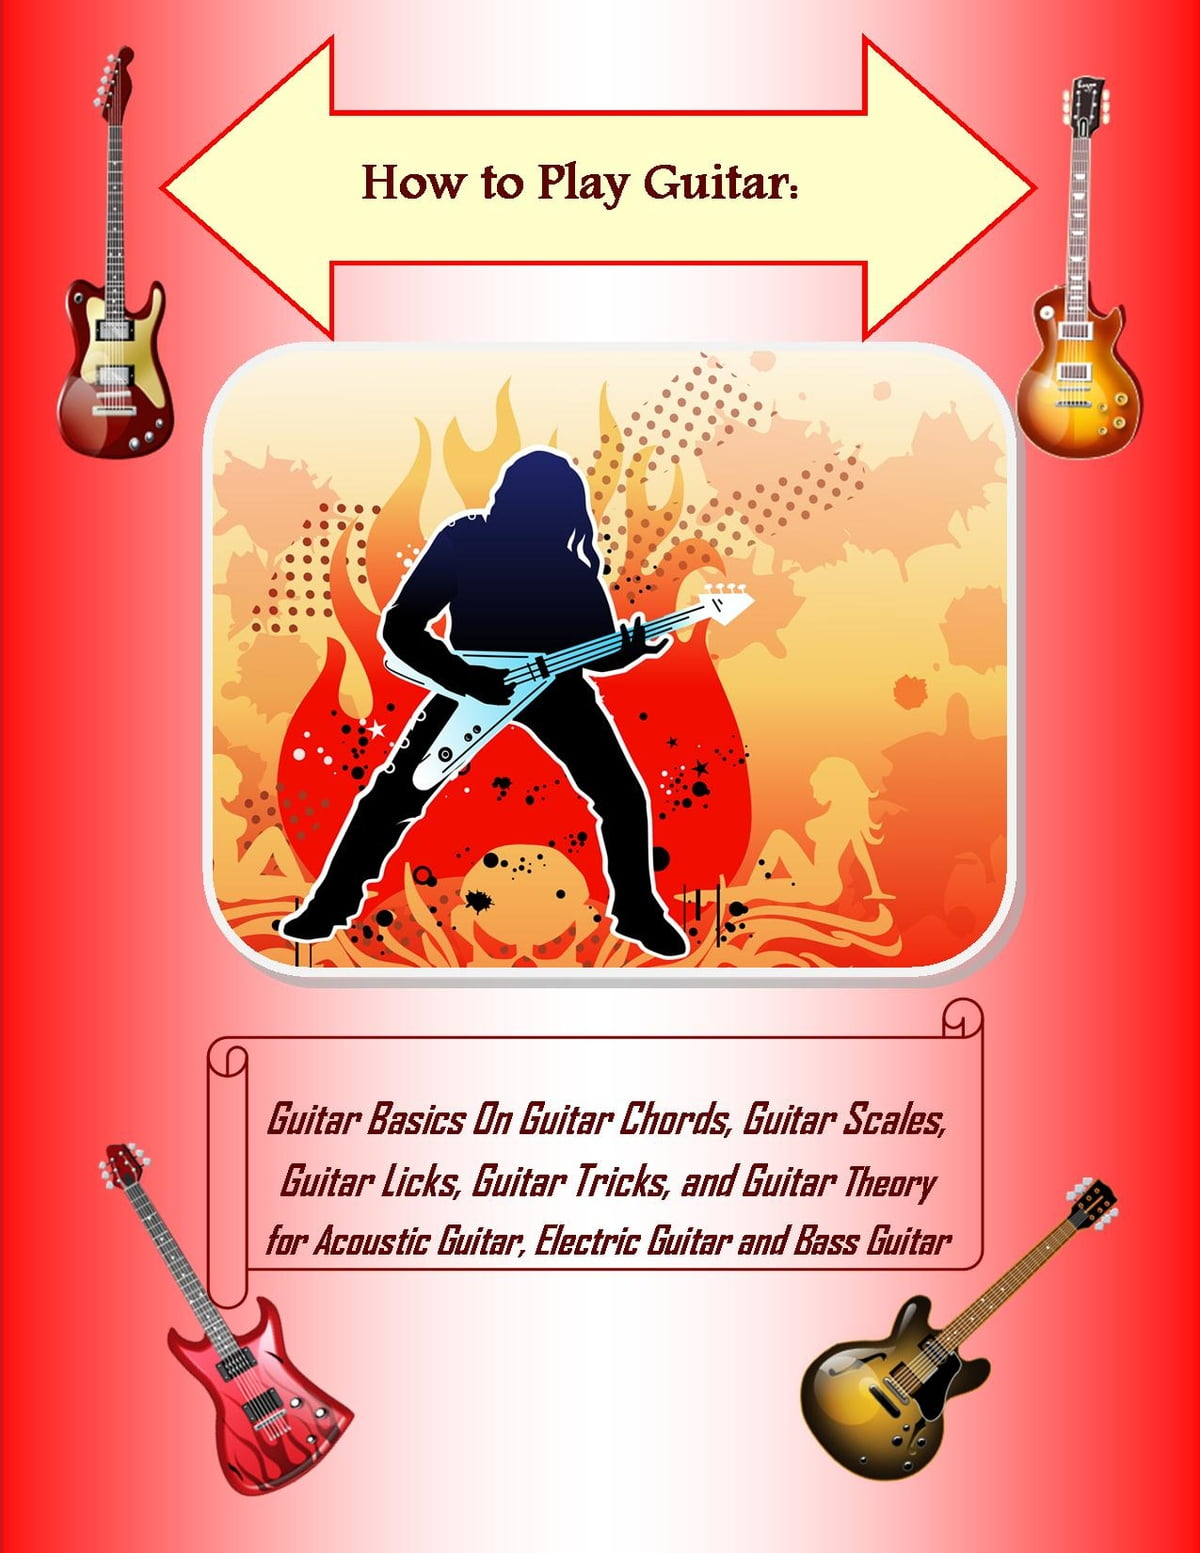 How To Play Guitar Guitar Basics On Guitar Chords Guitar Scales